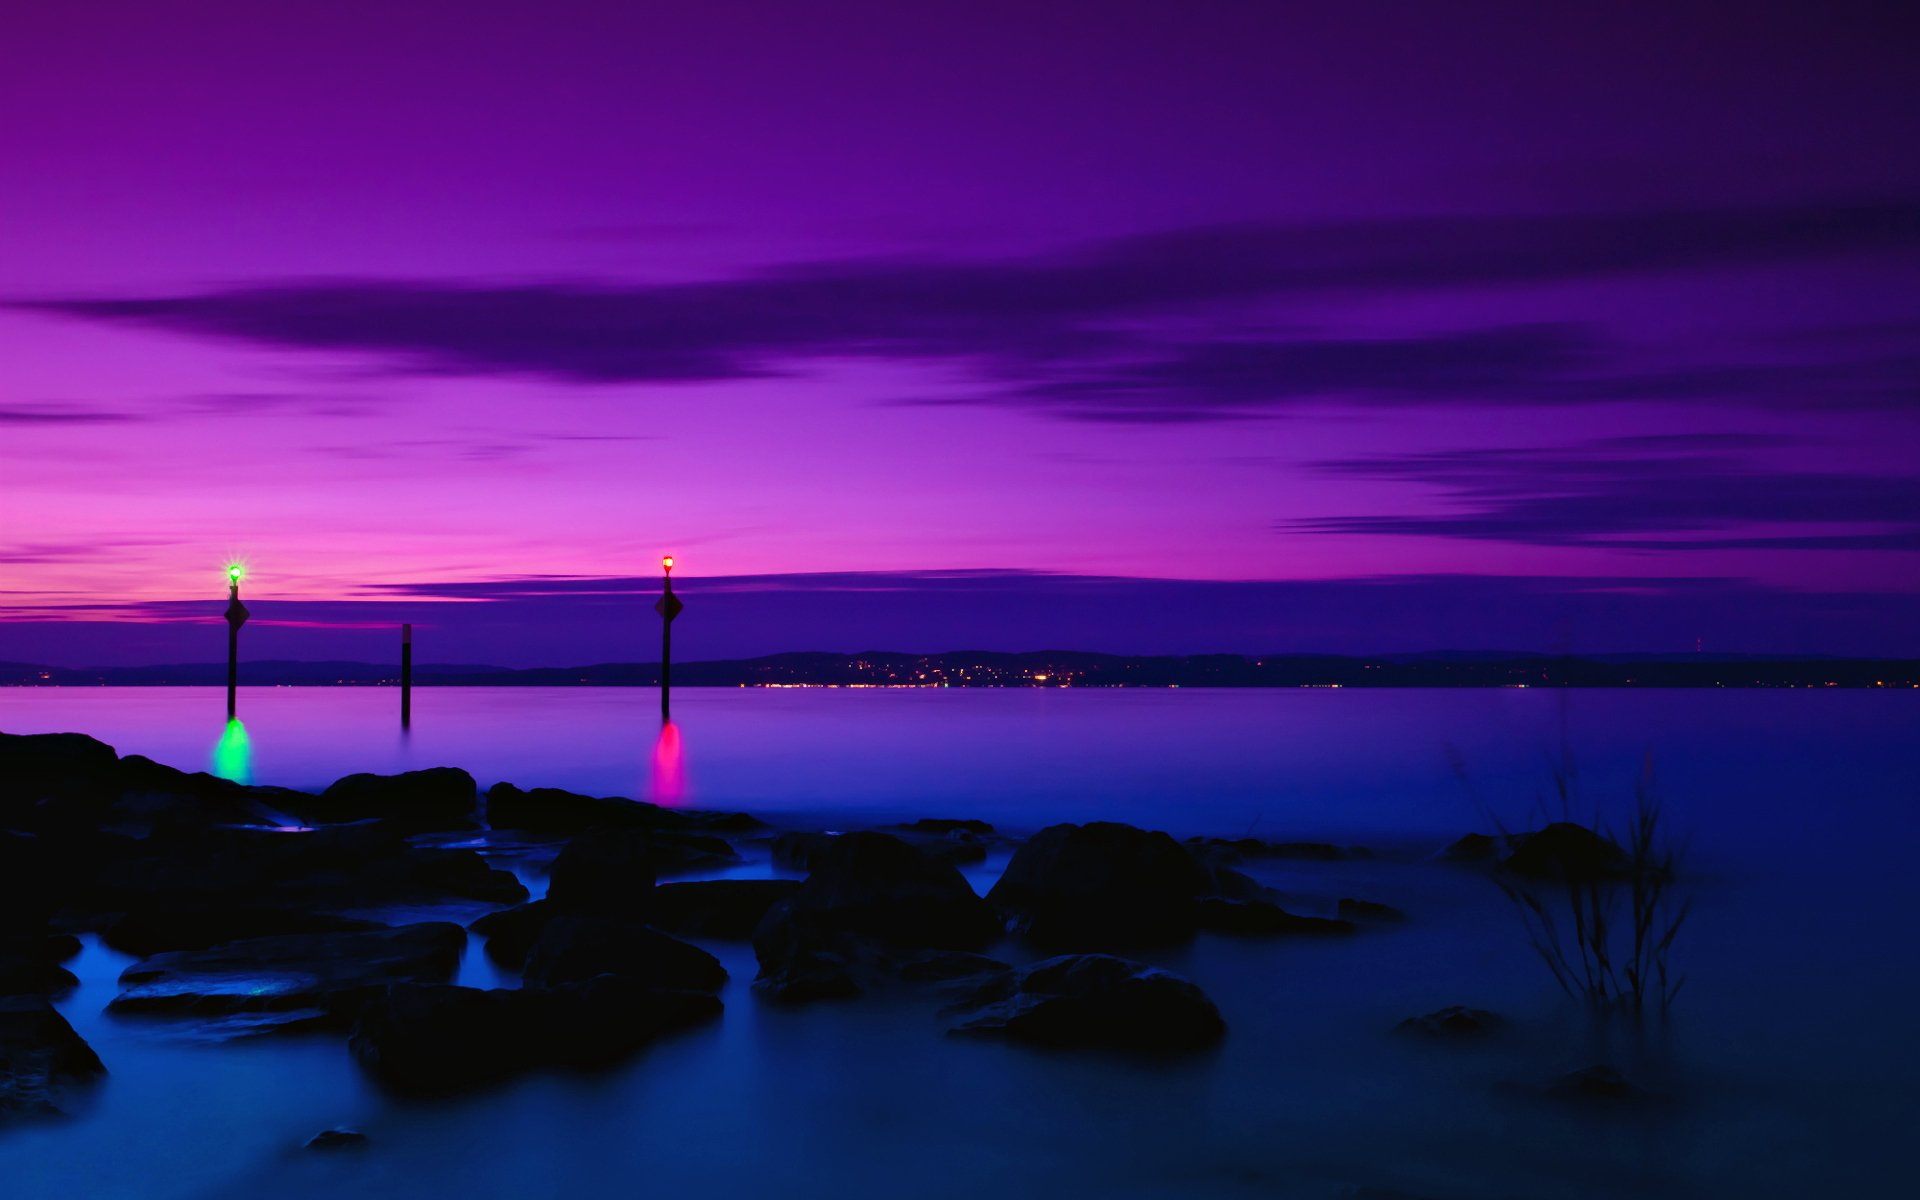 Purple Sunset Wallpaper 23196 1920x1200 px ~ HDWallSource.com